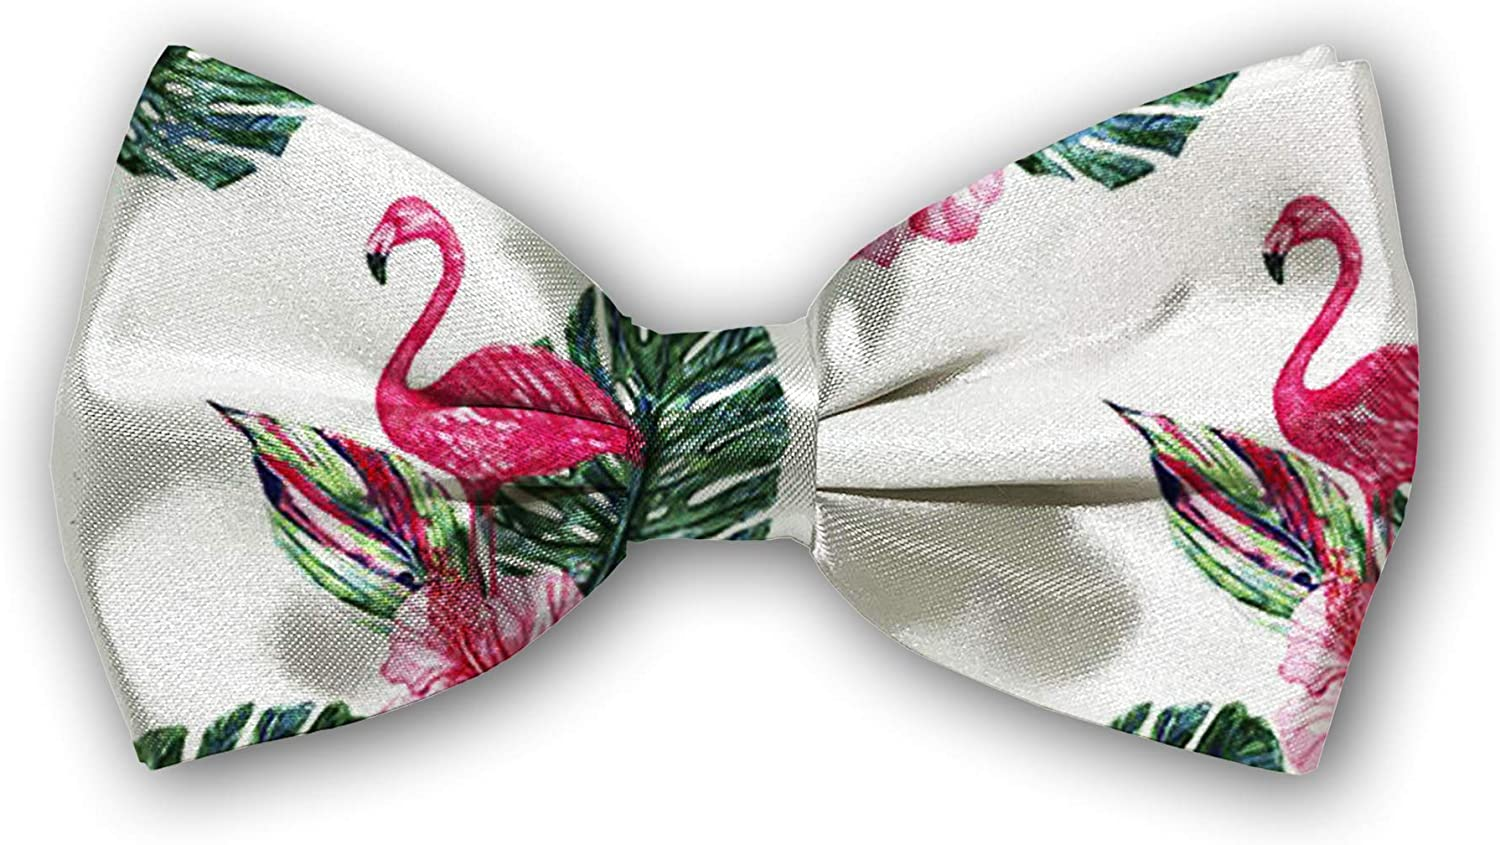 Bow Tie Max 74% El Paso Mall OFF Tuxedo Butterfly Cotton for Bowtie Adjustable Mens Boys